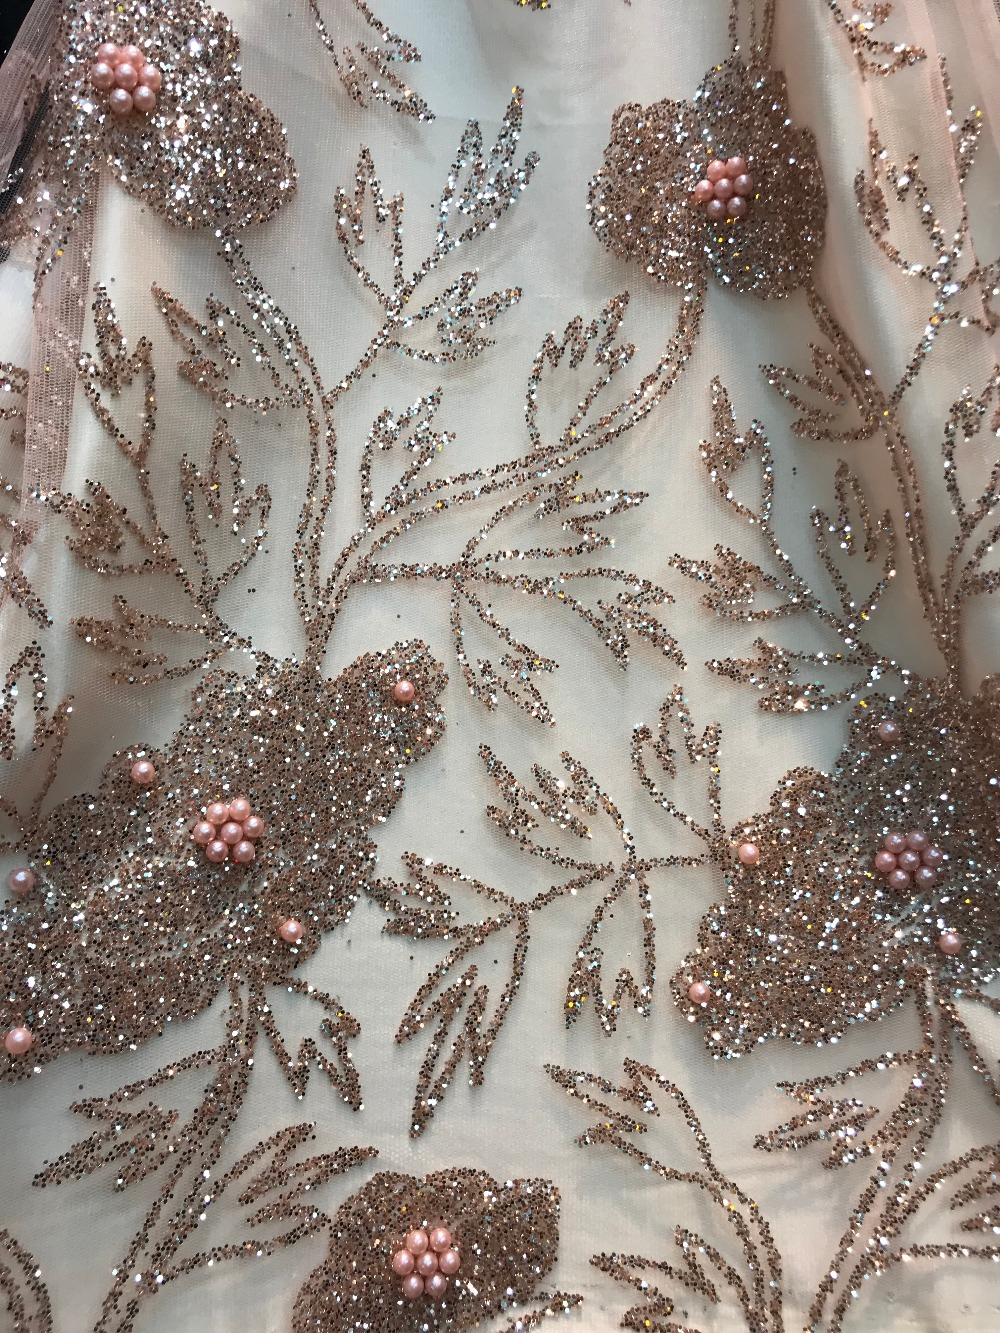 JIANXI C 6630 glued glitter Nigerian tulle lace fabric with beads glued glitter african tulle net